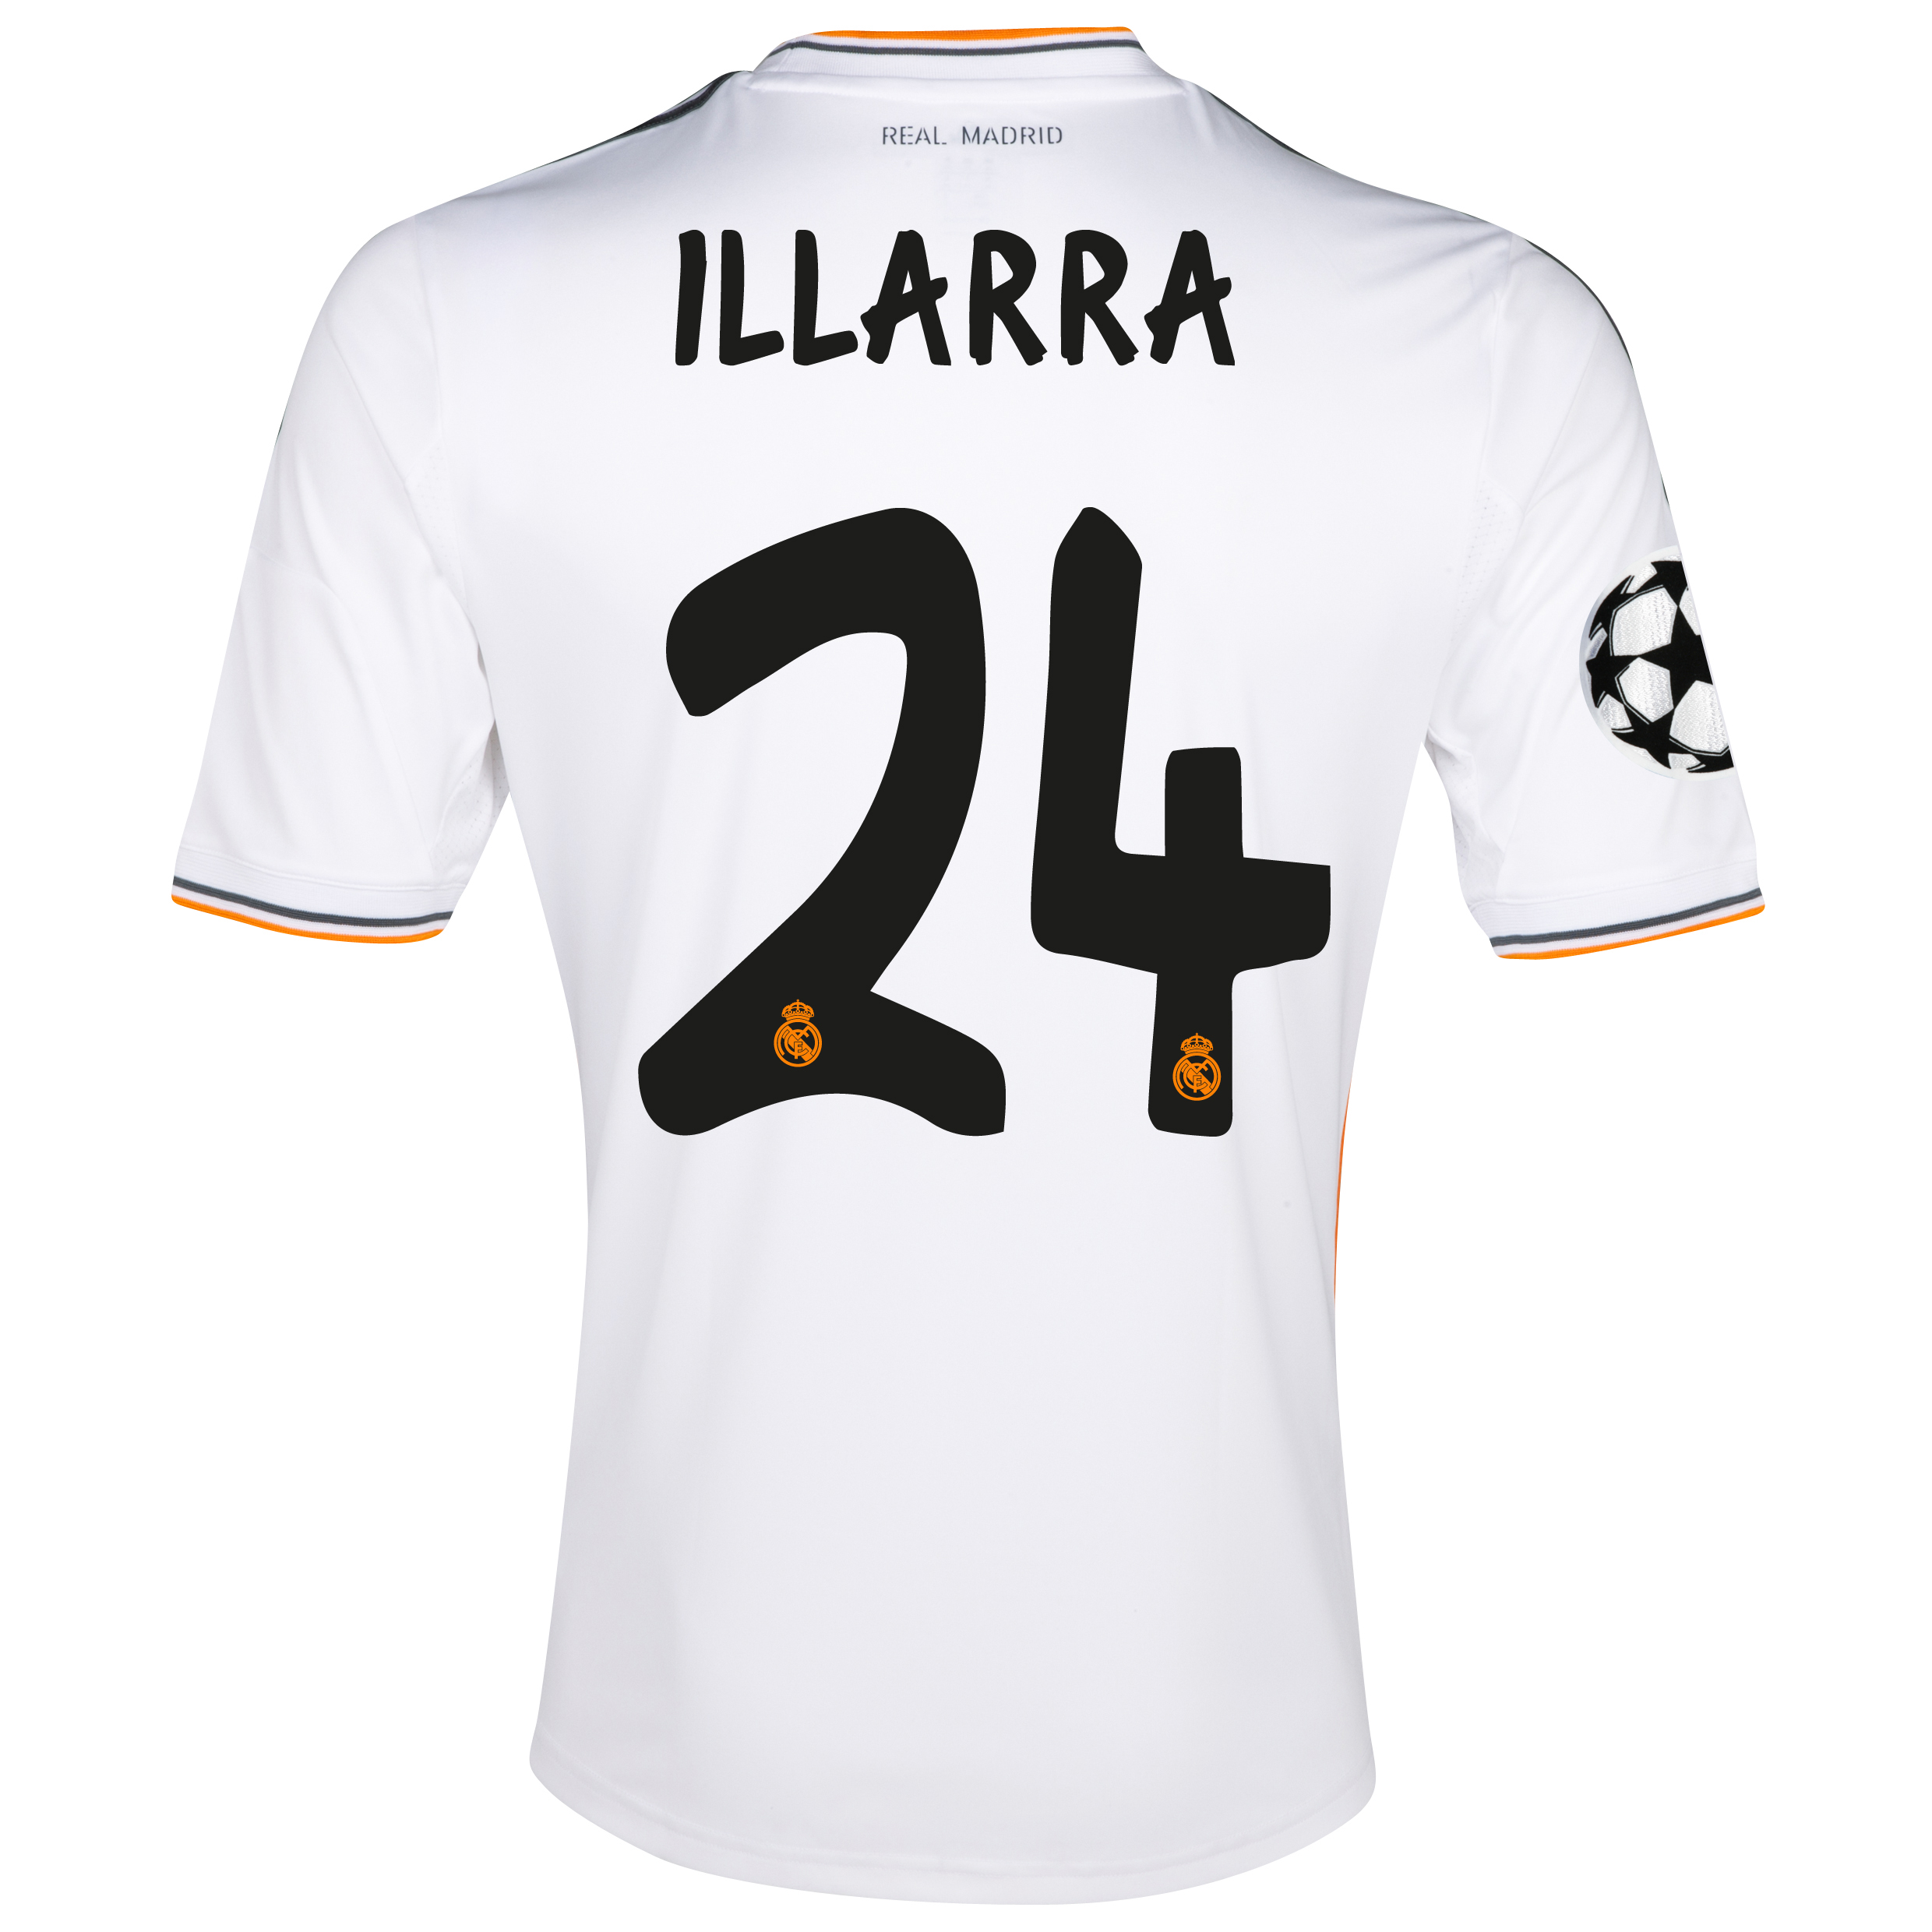 Real Madrid UEFA Champions League Home Shirt 2013/14 - kids with Illarra 24 printing